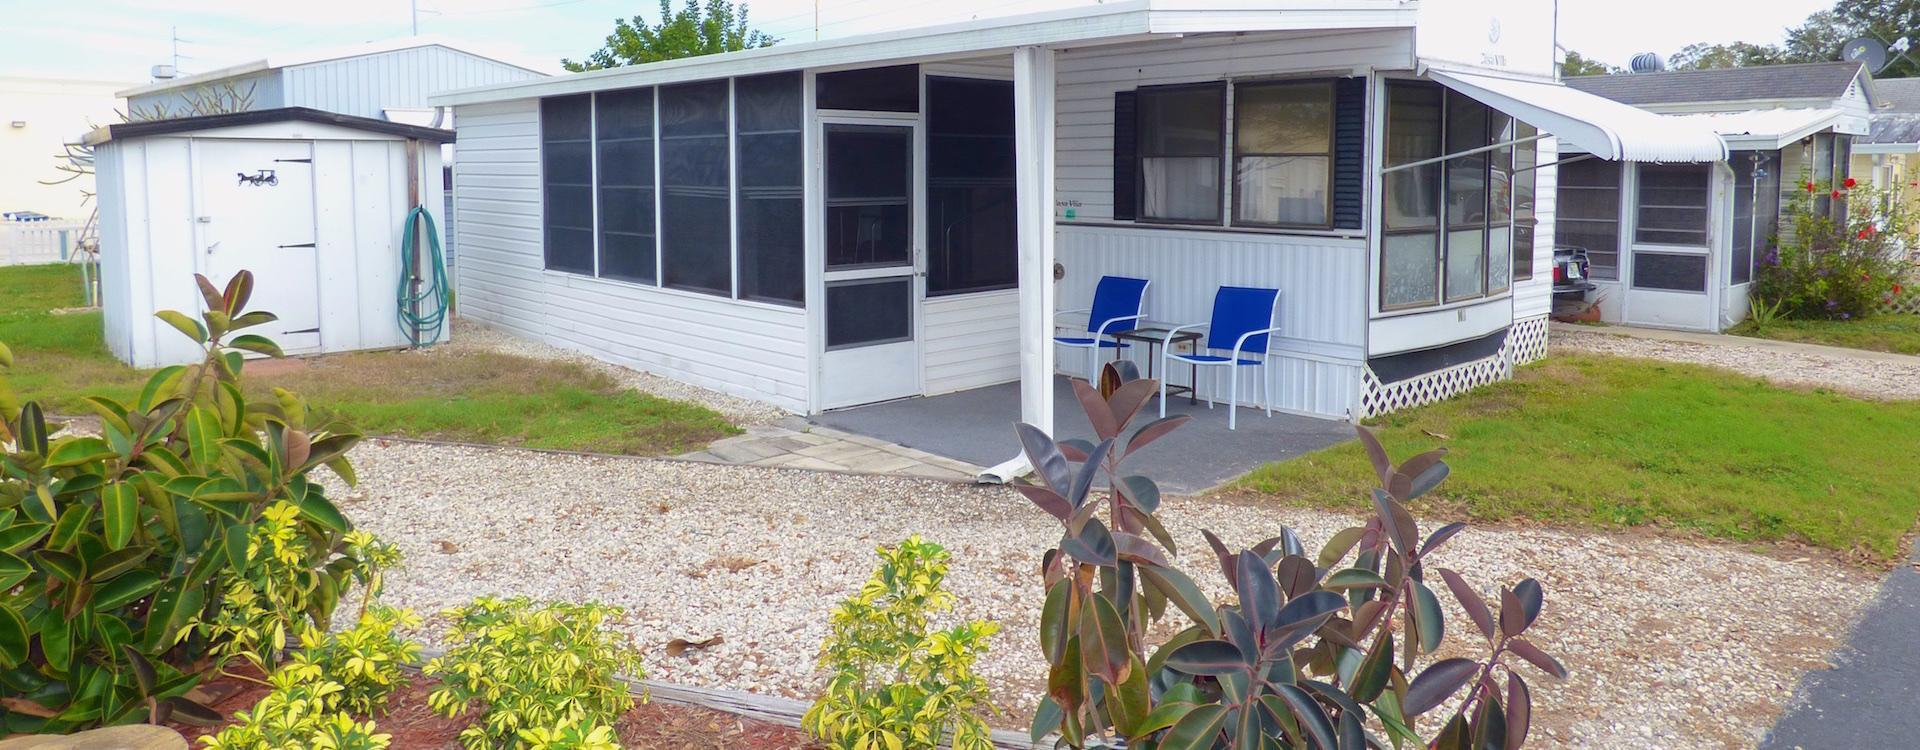 mobile homes for sale clearwater fl with Mobile Home For Sale Seminole Fl Roycroft Travel Trailer Park M2 on sunsetmhs furthermore A Mobile Home At Rainbow Court Cottages And Trailer Park Largo Fl also sunsetmhs additionally Default together with sunsetmhs.